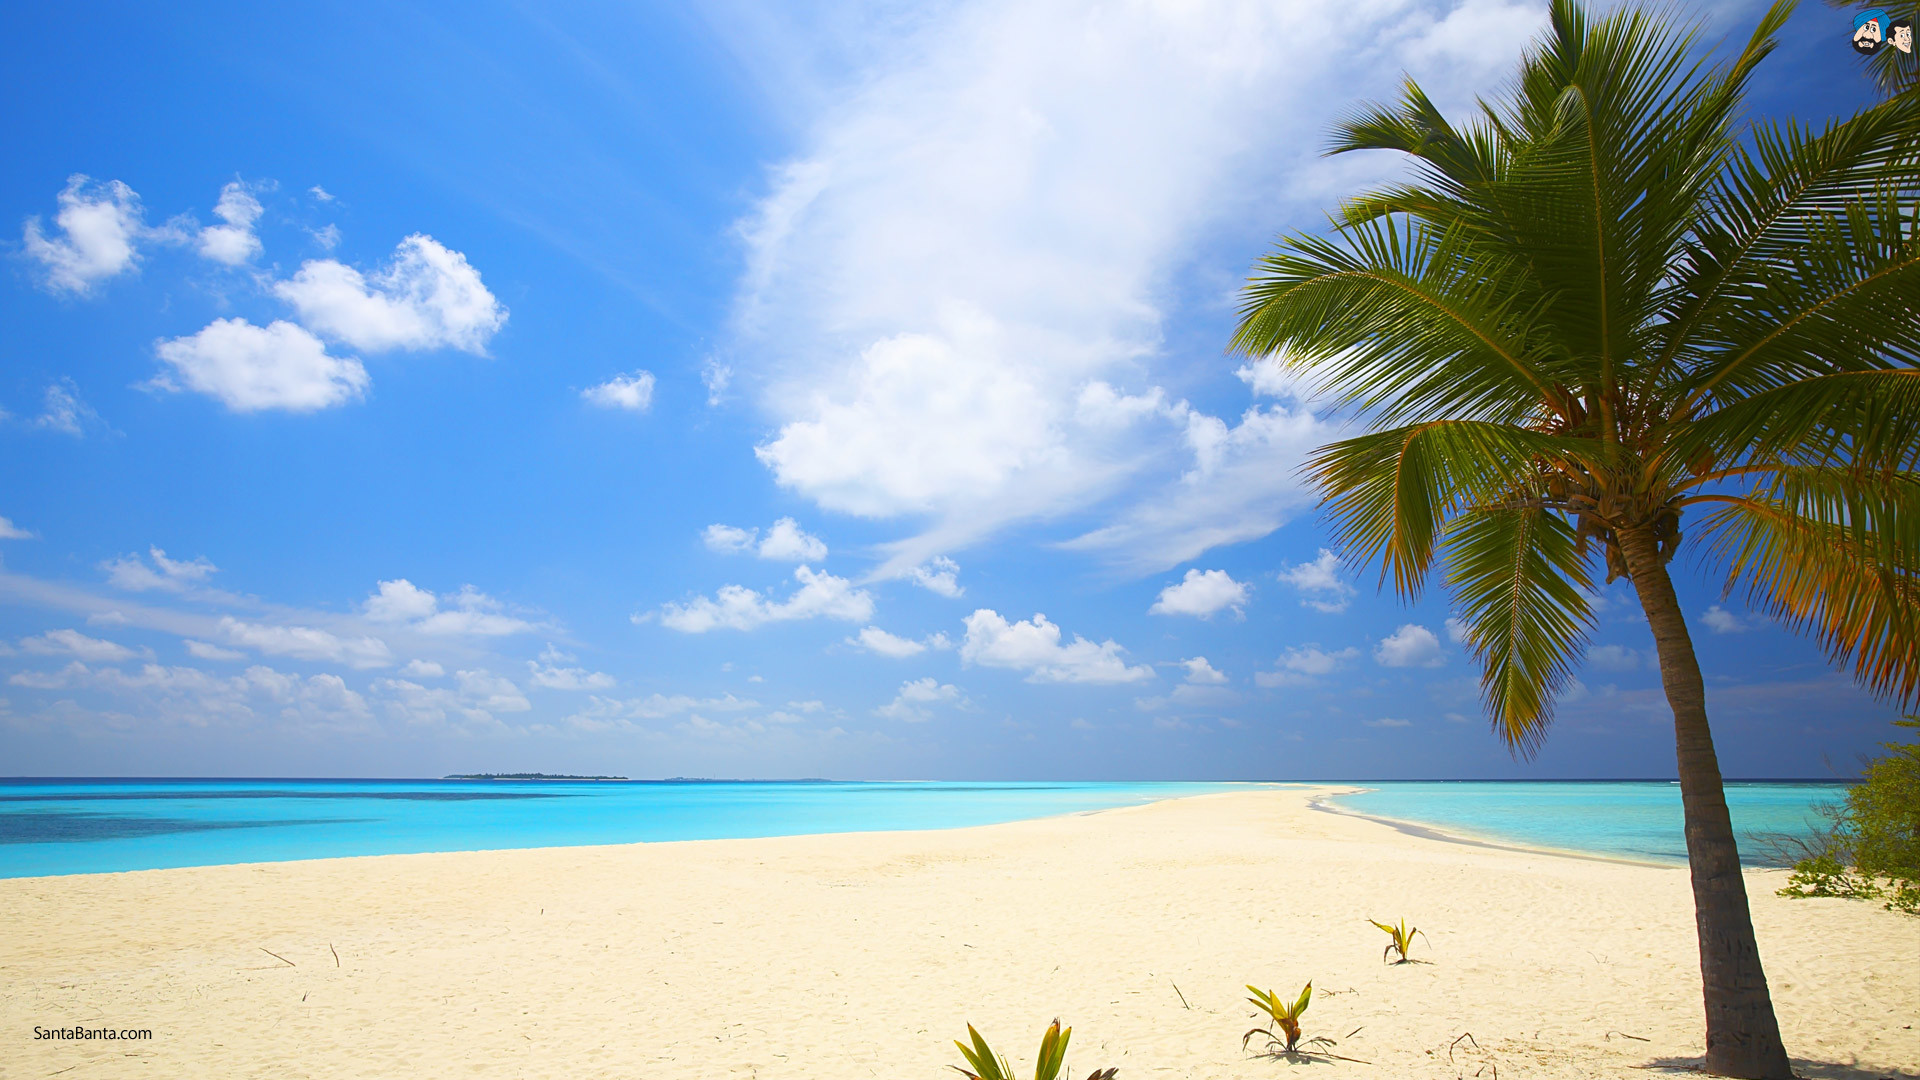 Beach Background Images – Wallpaper Cave